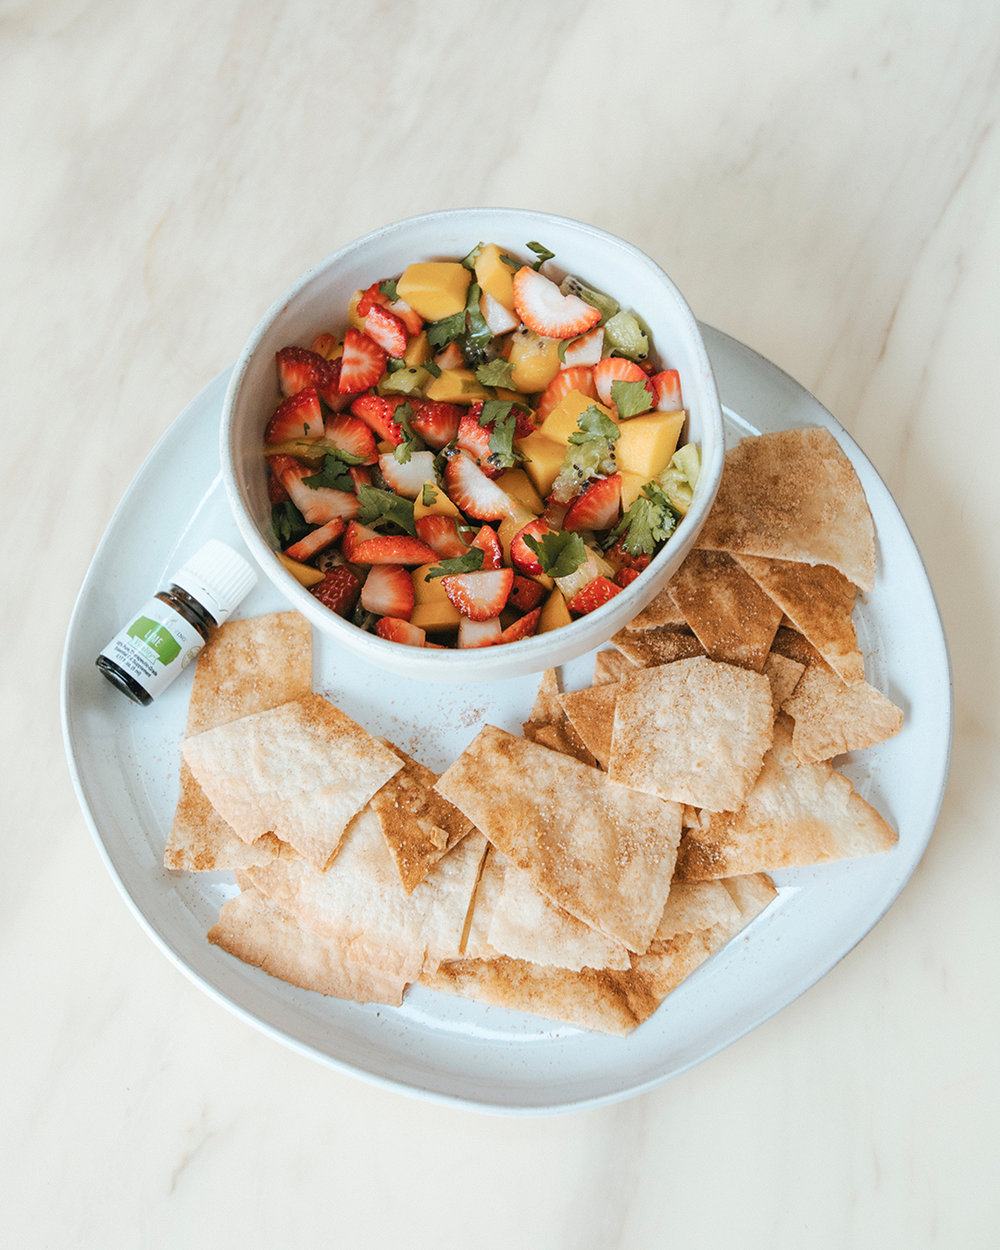 The-Oily-Home-Companion-Recipe-Mango-Strawberry-Kiwi-Fruit-Salad-Salsa-Cinnamon-Lime-Chips-Tortilla-Gluten-Free-Snack-Spring-Summer2.jpg